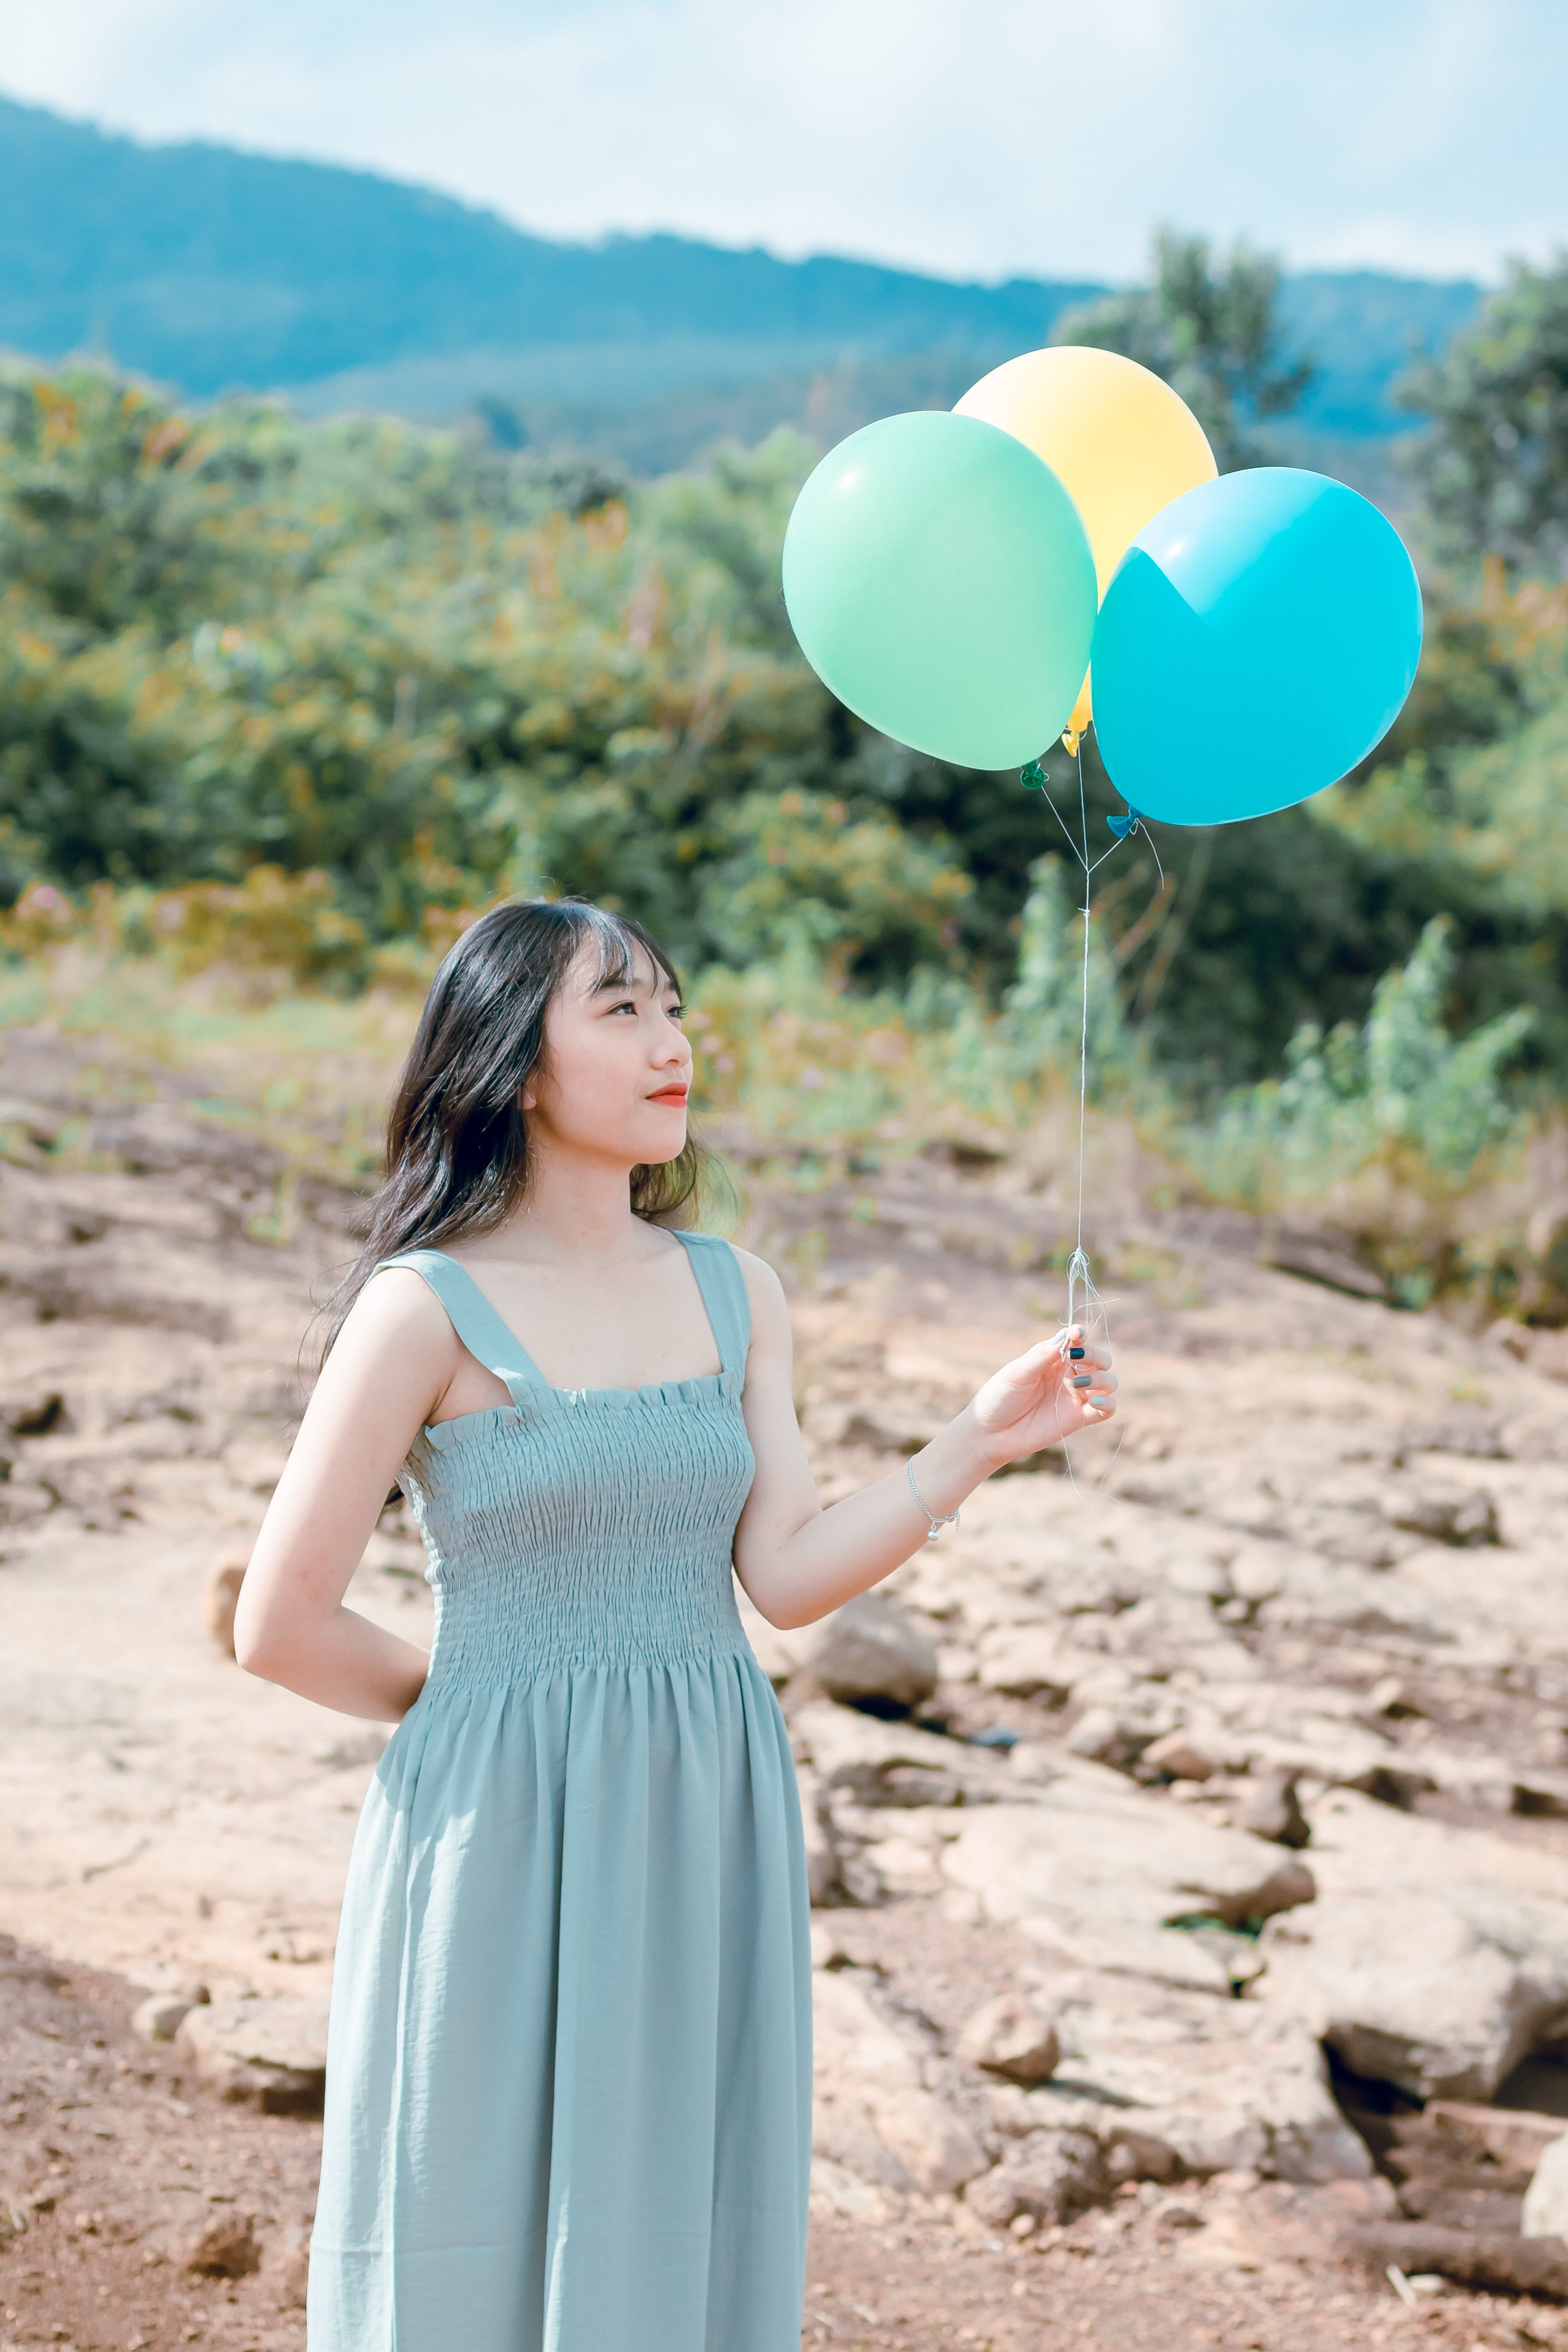 Woman In Dress Holding Balloons